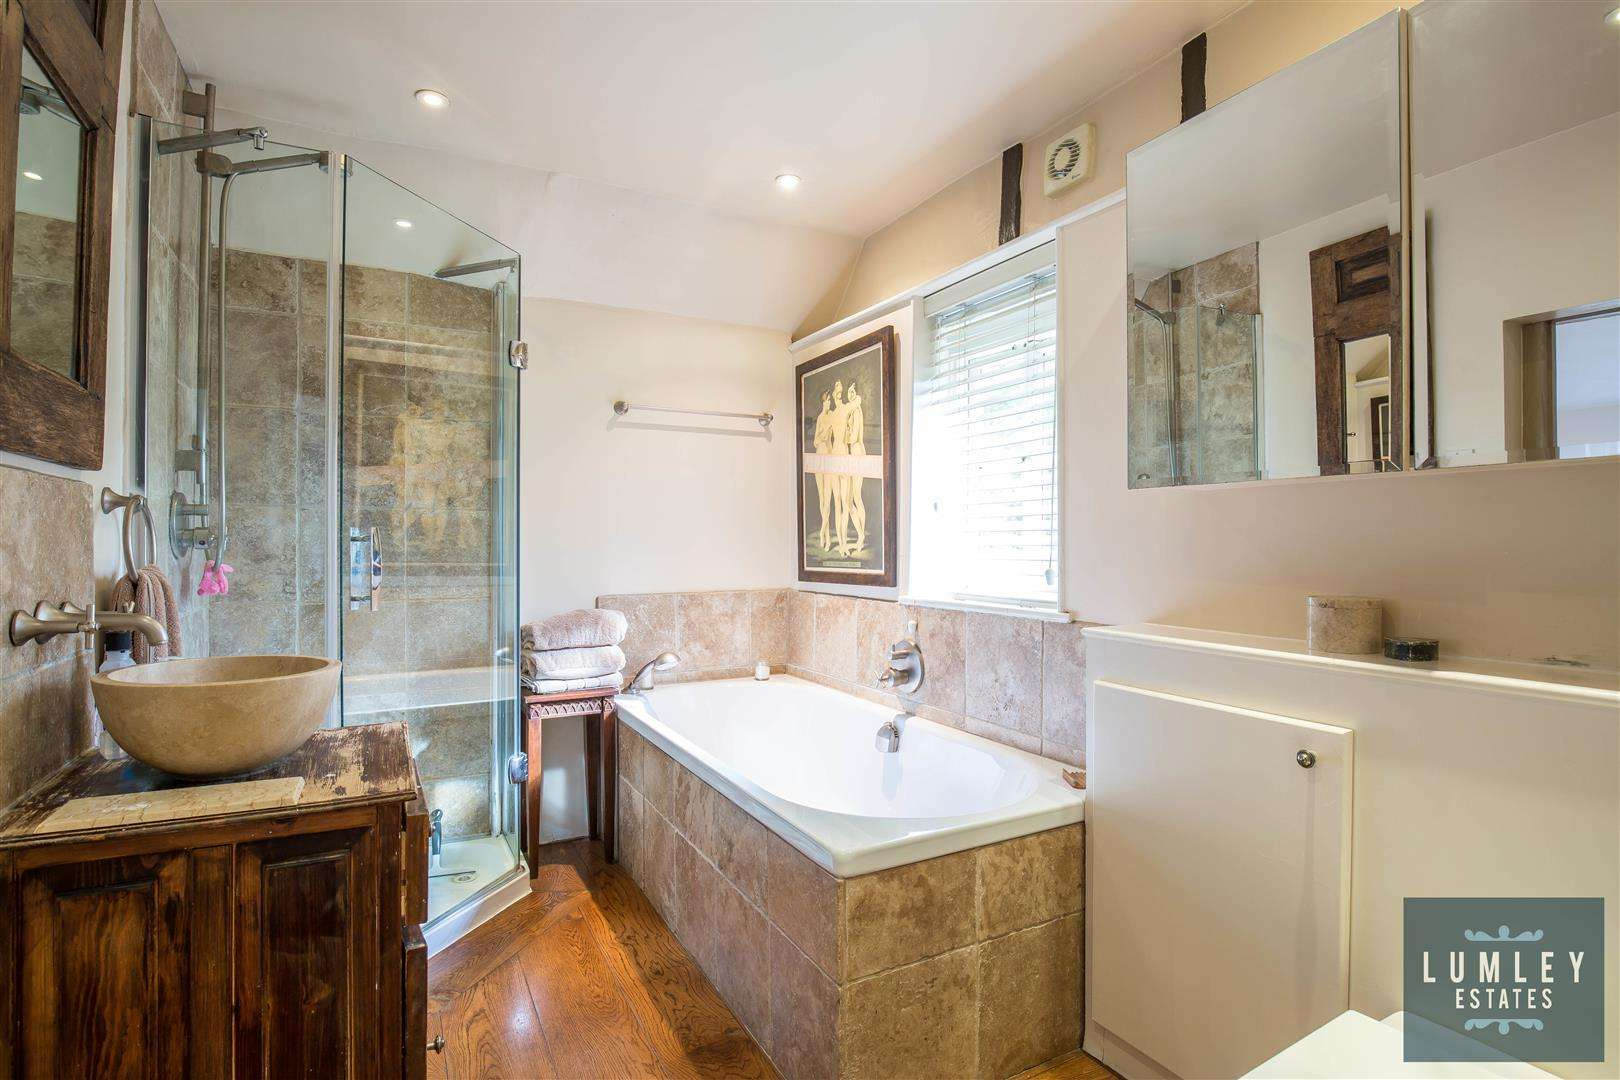 4 bed for sale in Park Street - (Property Image 8)